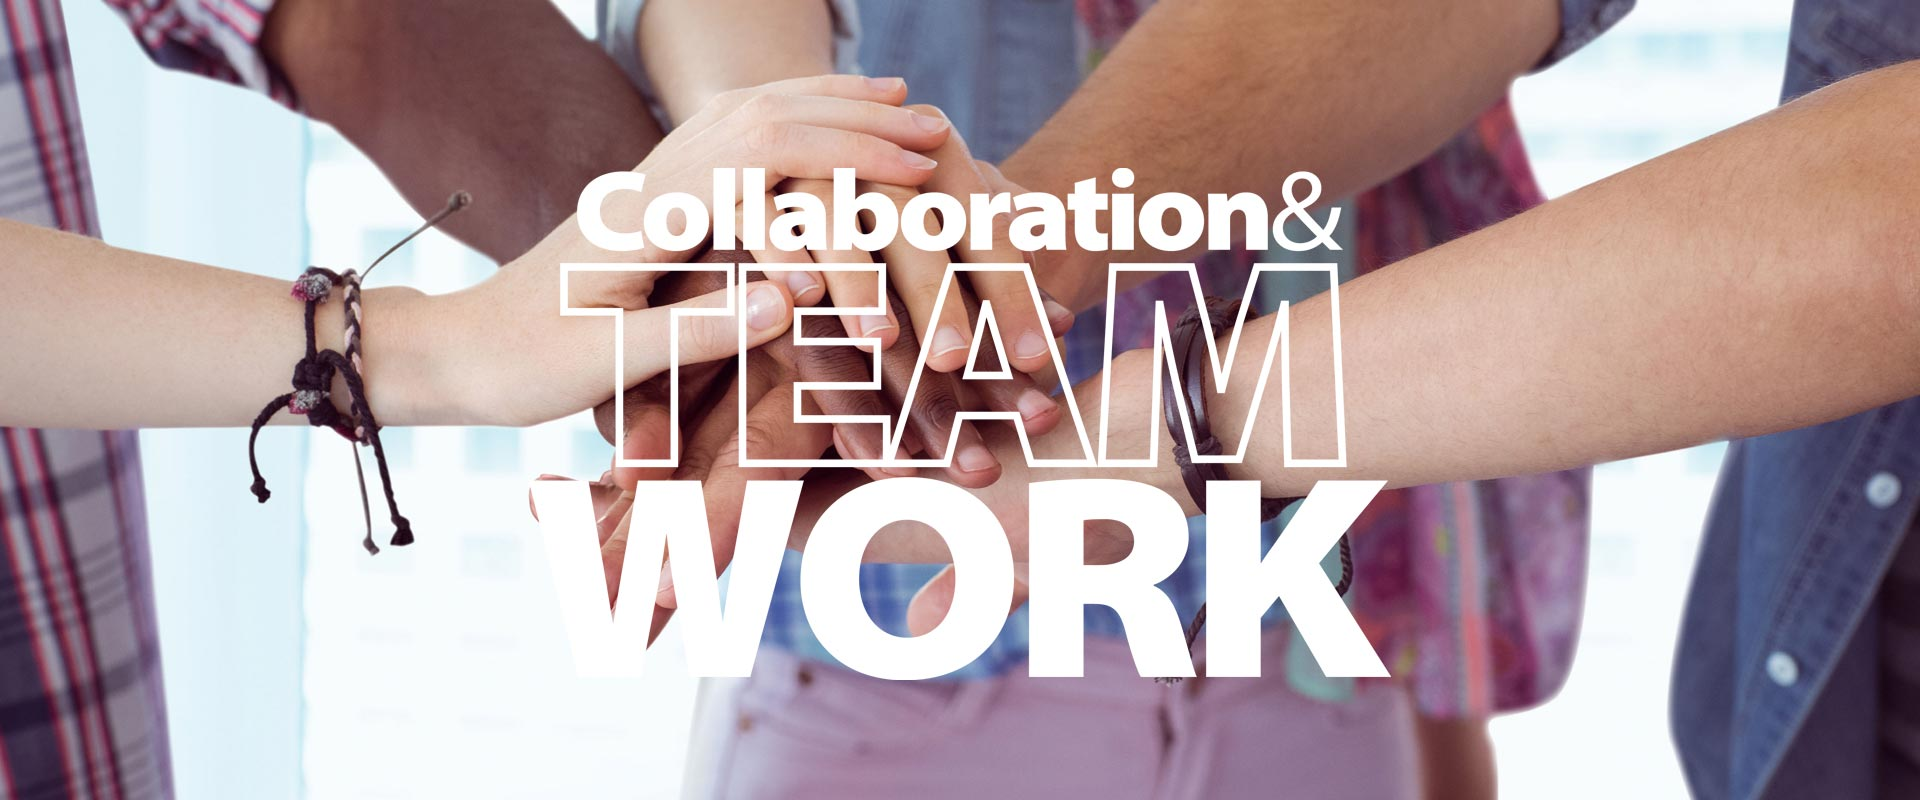 teamwork-slider